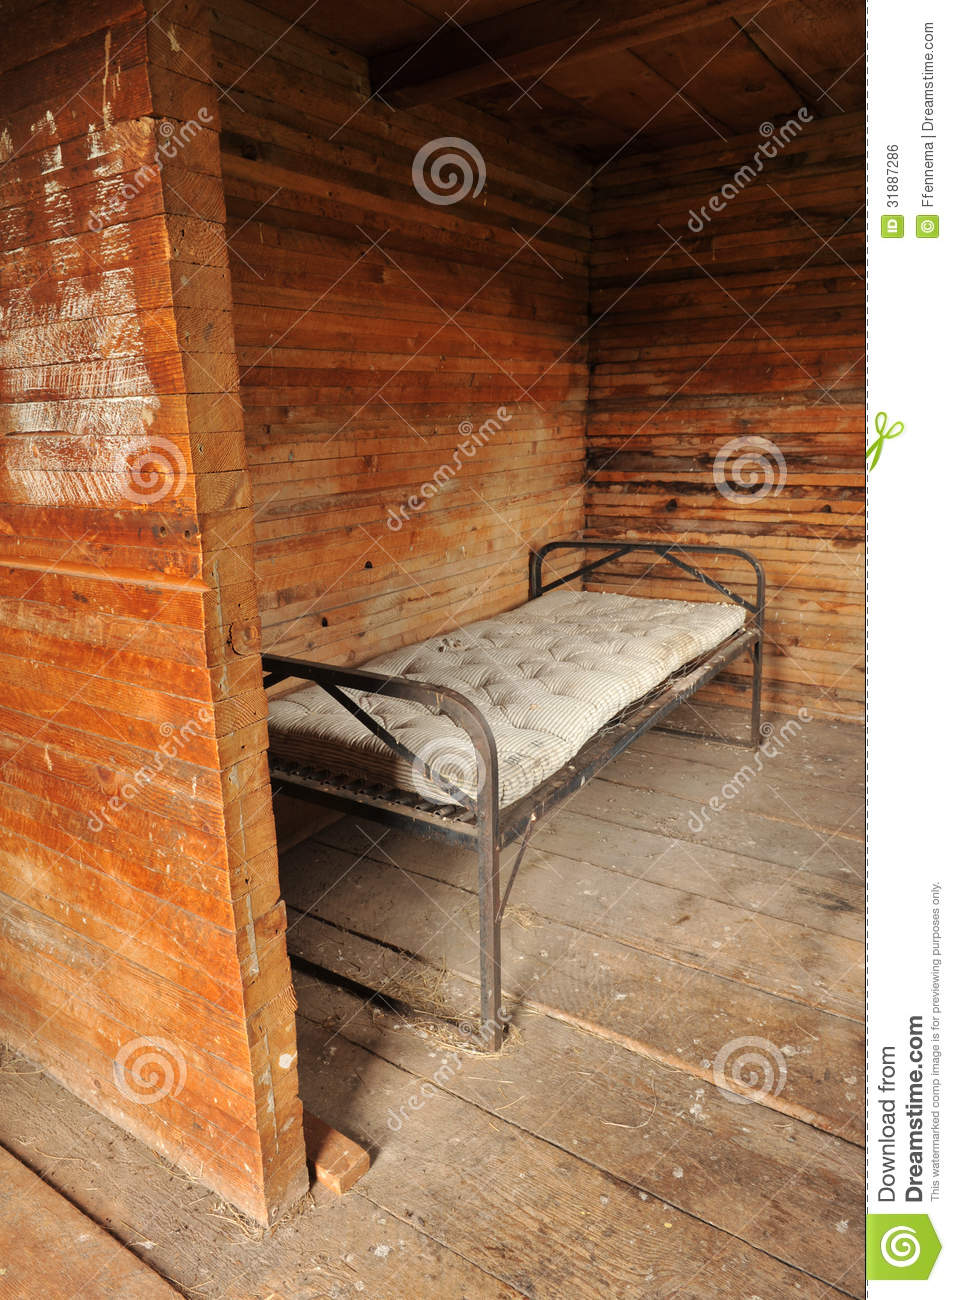 room with a metal bed frame and old mattress stock photo image 31887286. Black Bedroom Furniture Sets. Home Design Ideas